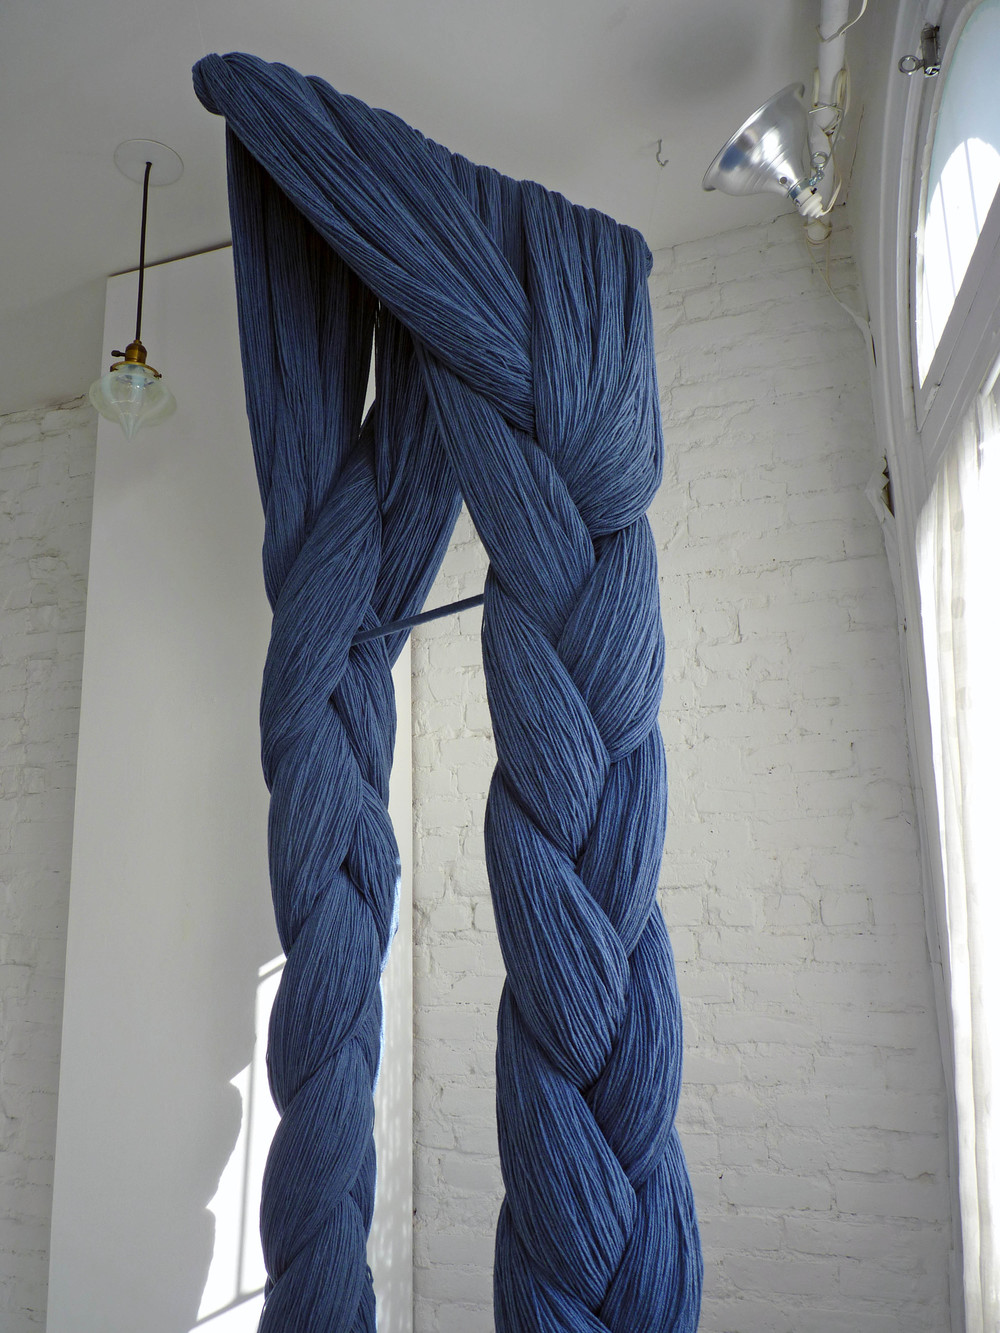 Laura, 2005-11, Acrylic Yarn, hardware, 3 x 4 x 9 feet (Detail)